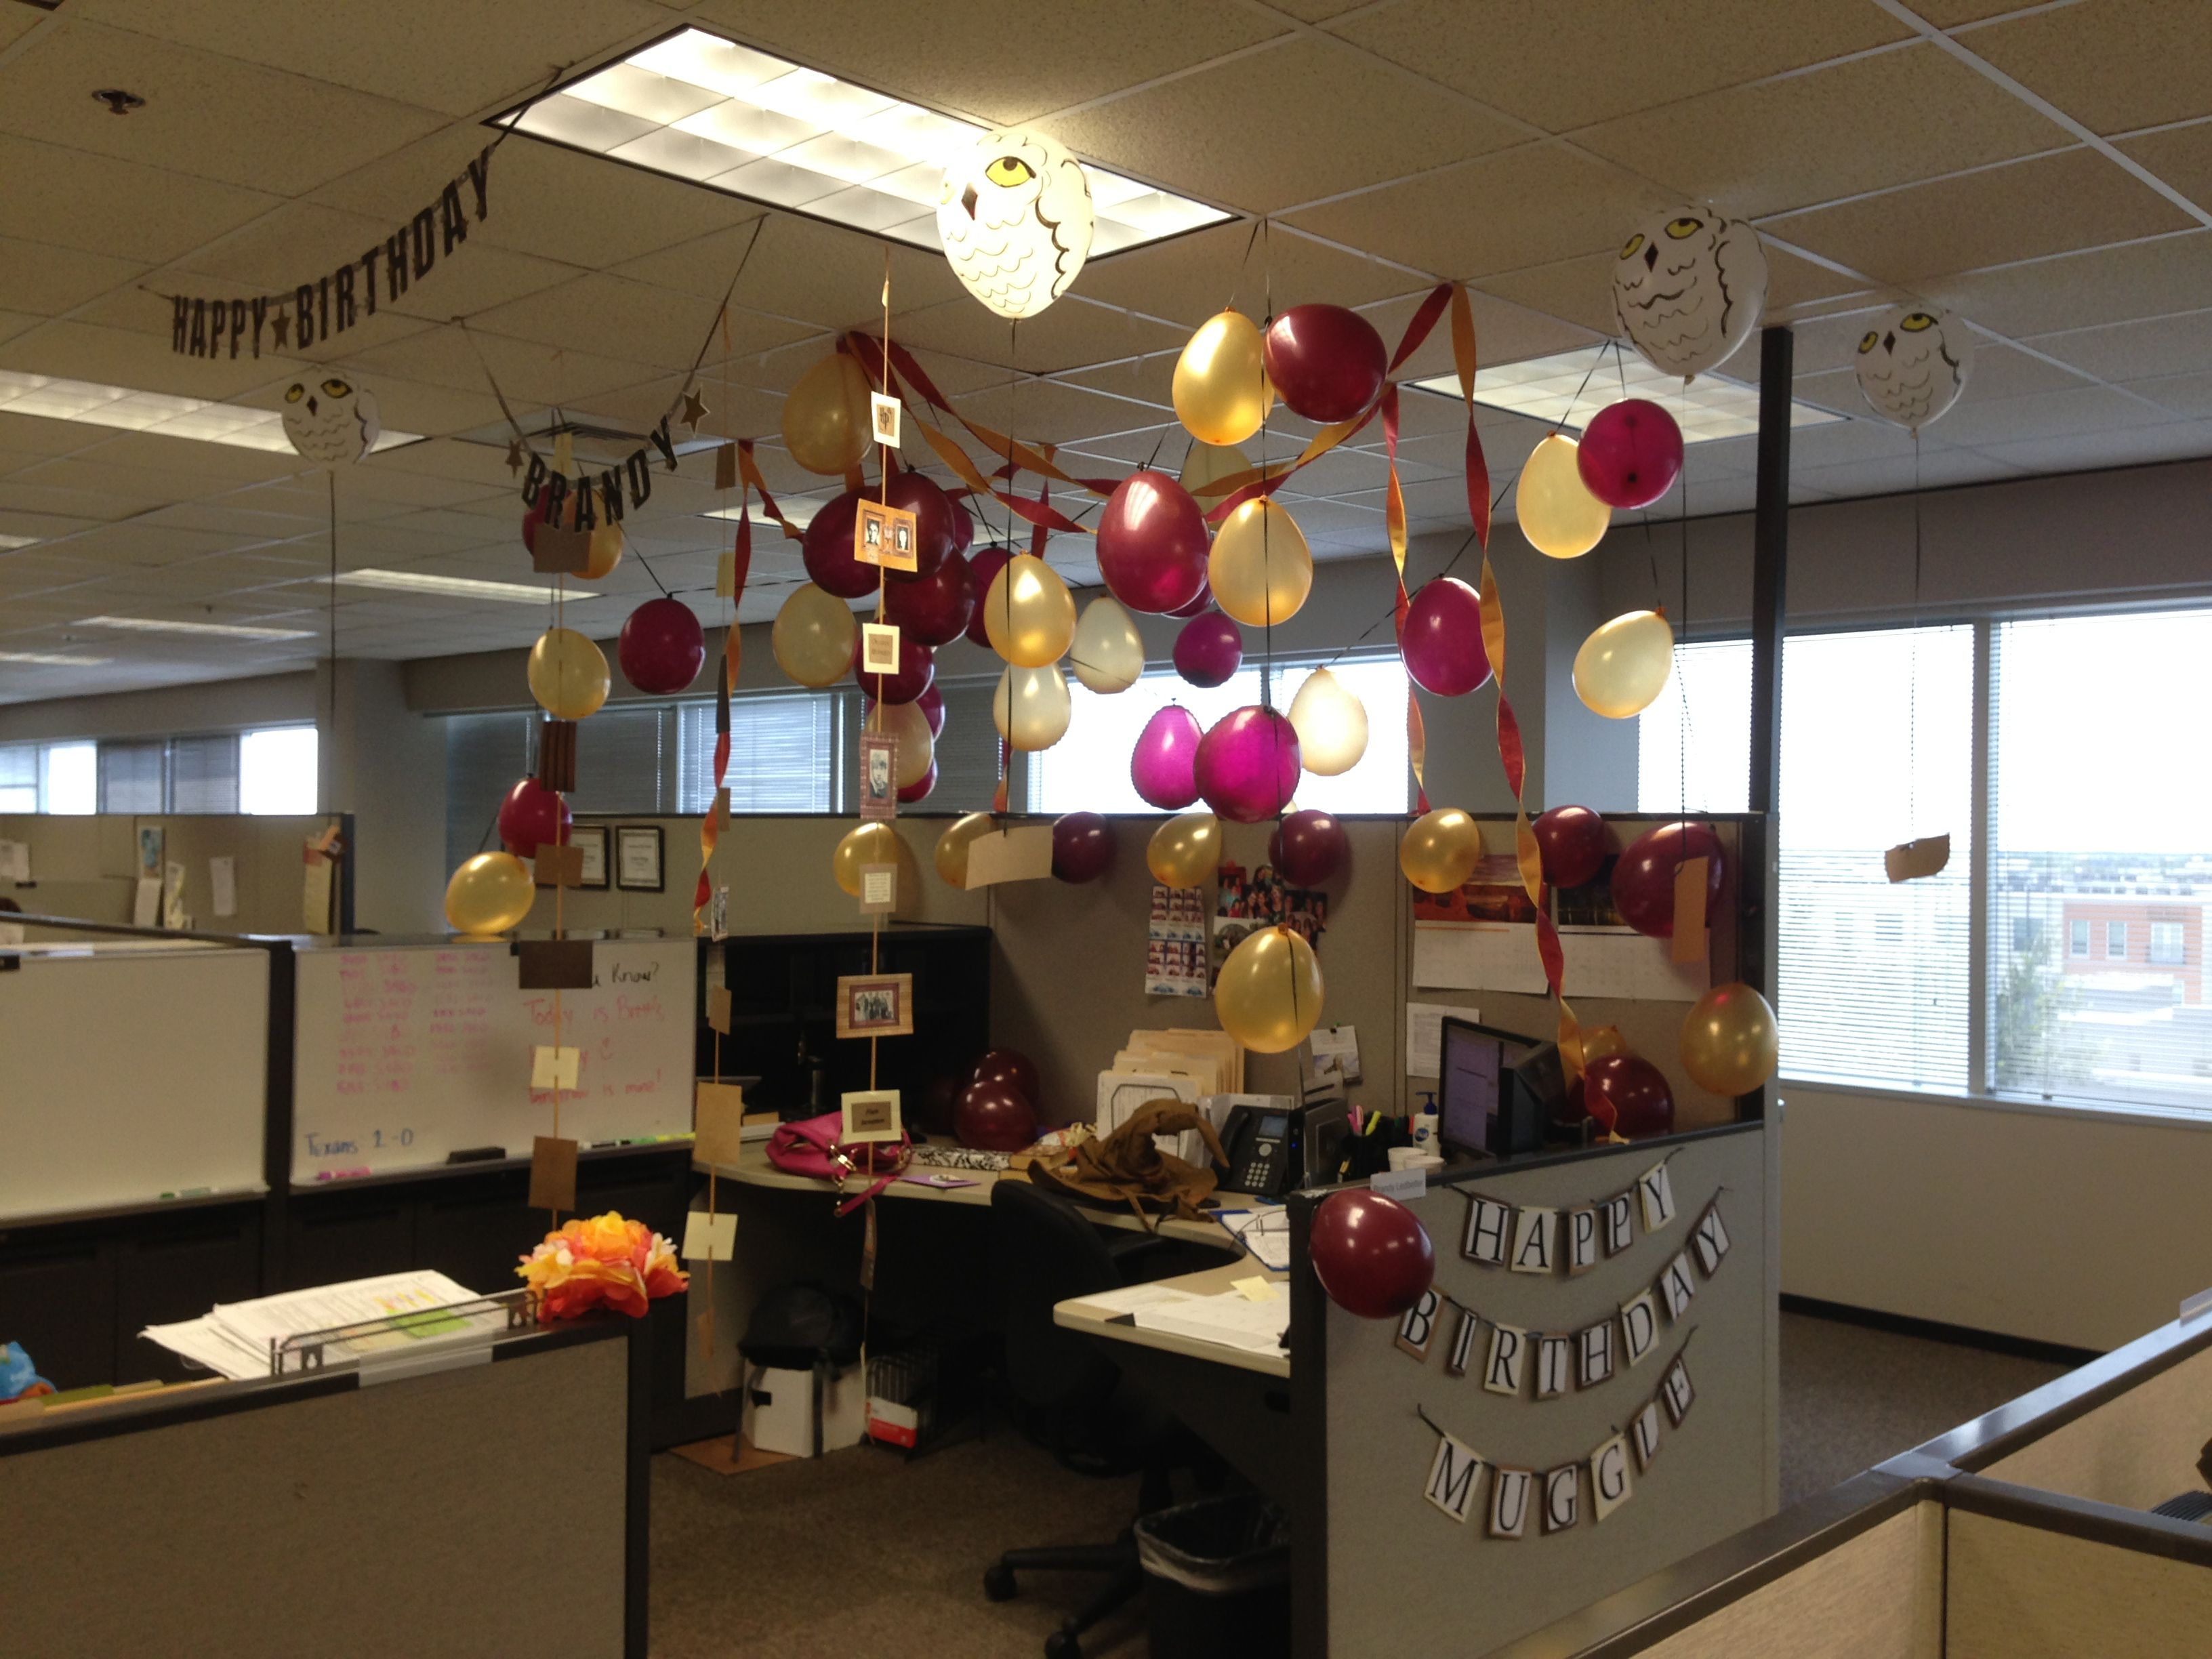 Harry potter birthday decorations for the office harry for Decoration harry potter